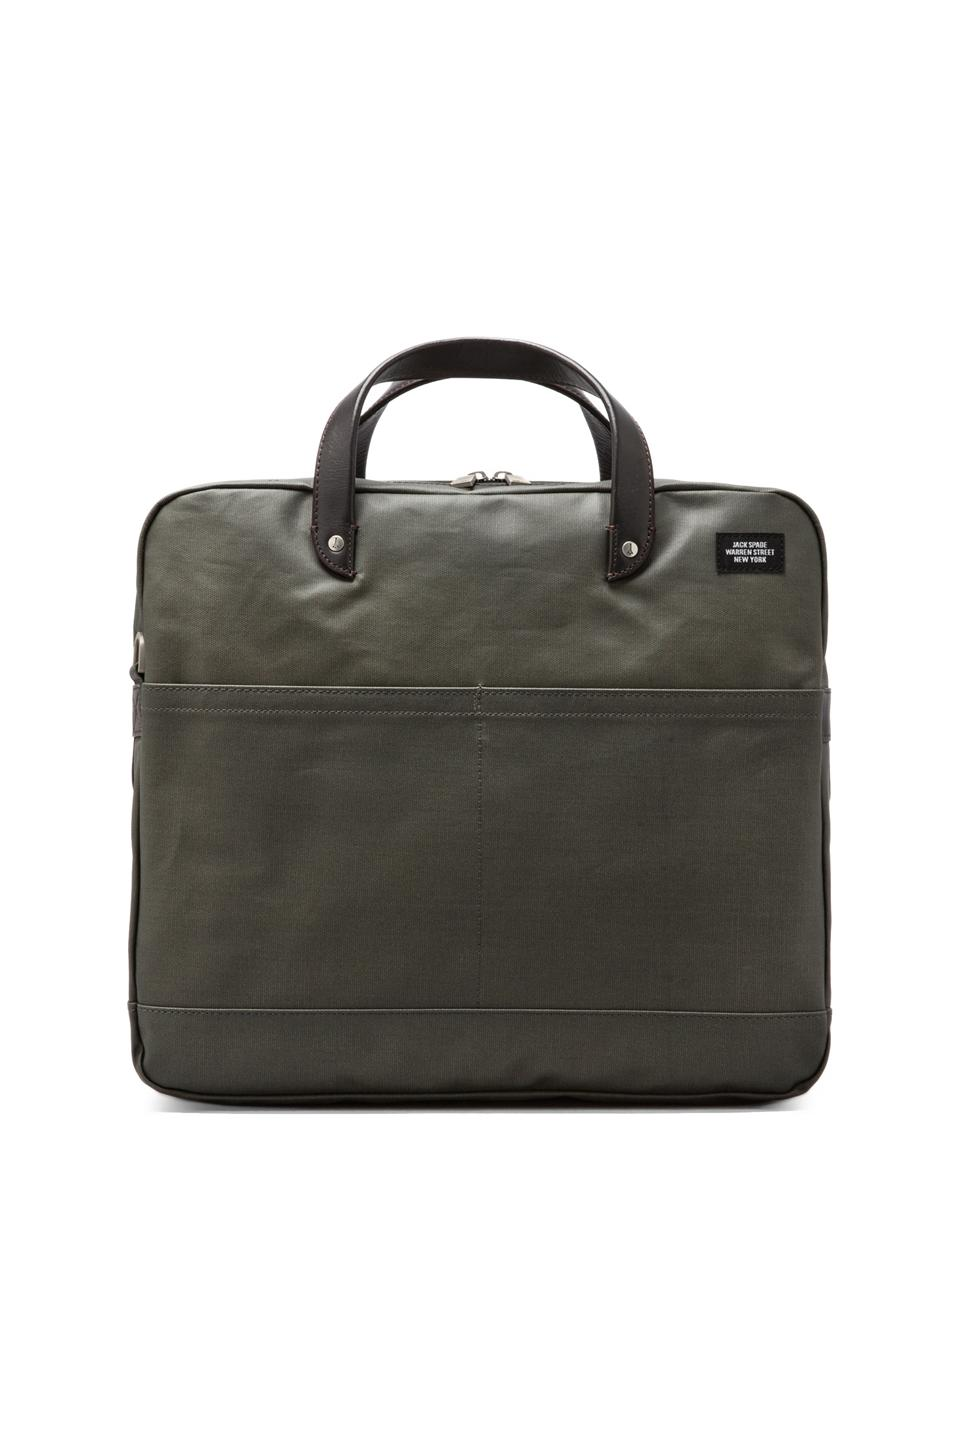 Jack Spade Coated Canvas Carryall en débardeur